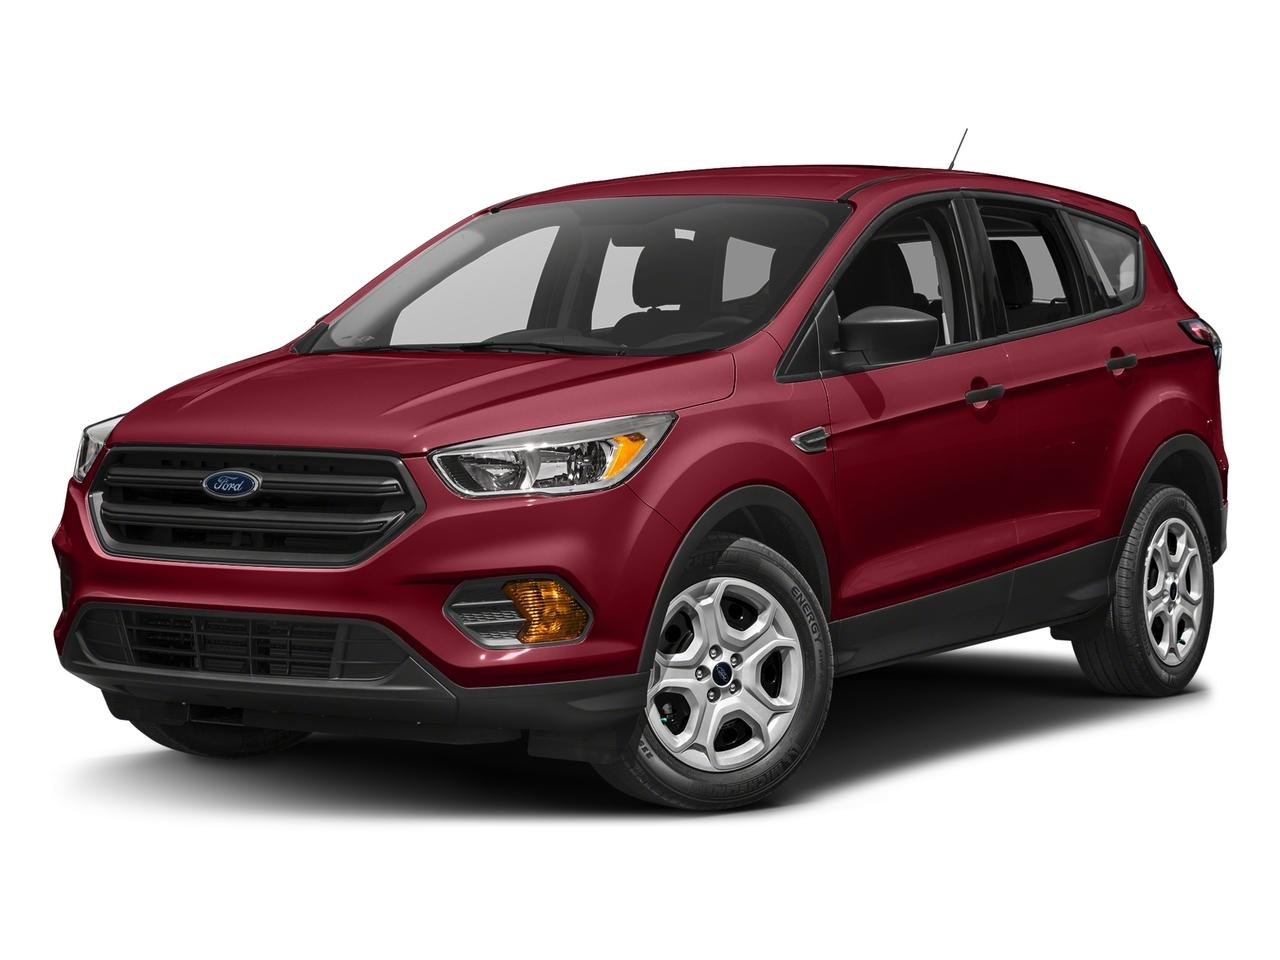 2017 Ford Escape Vehicle Photo in Arlington, TX 76011